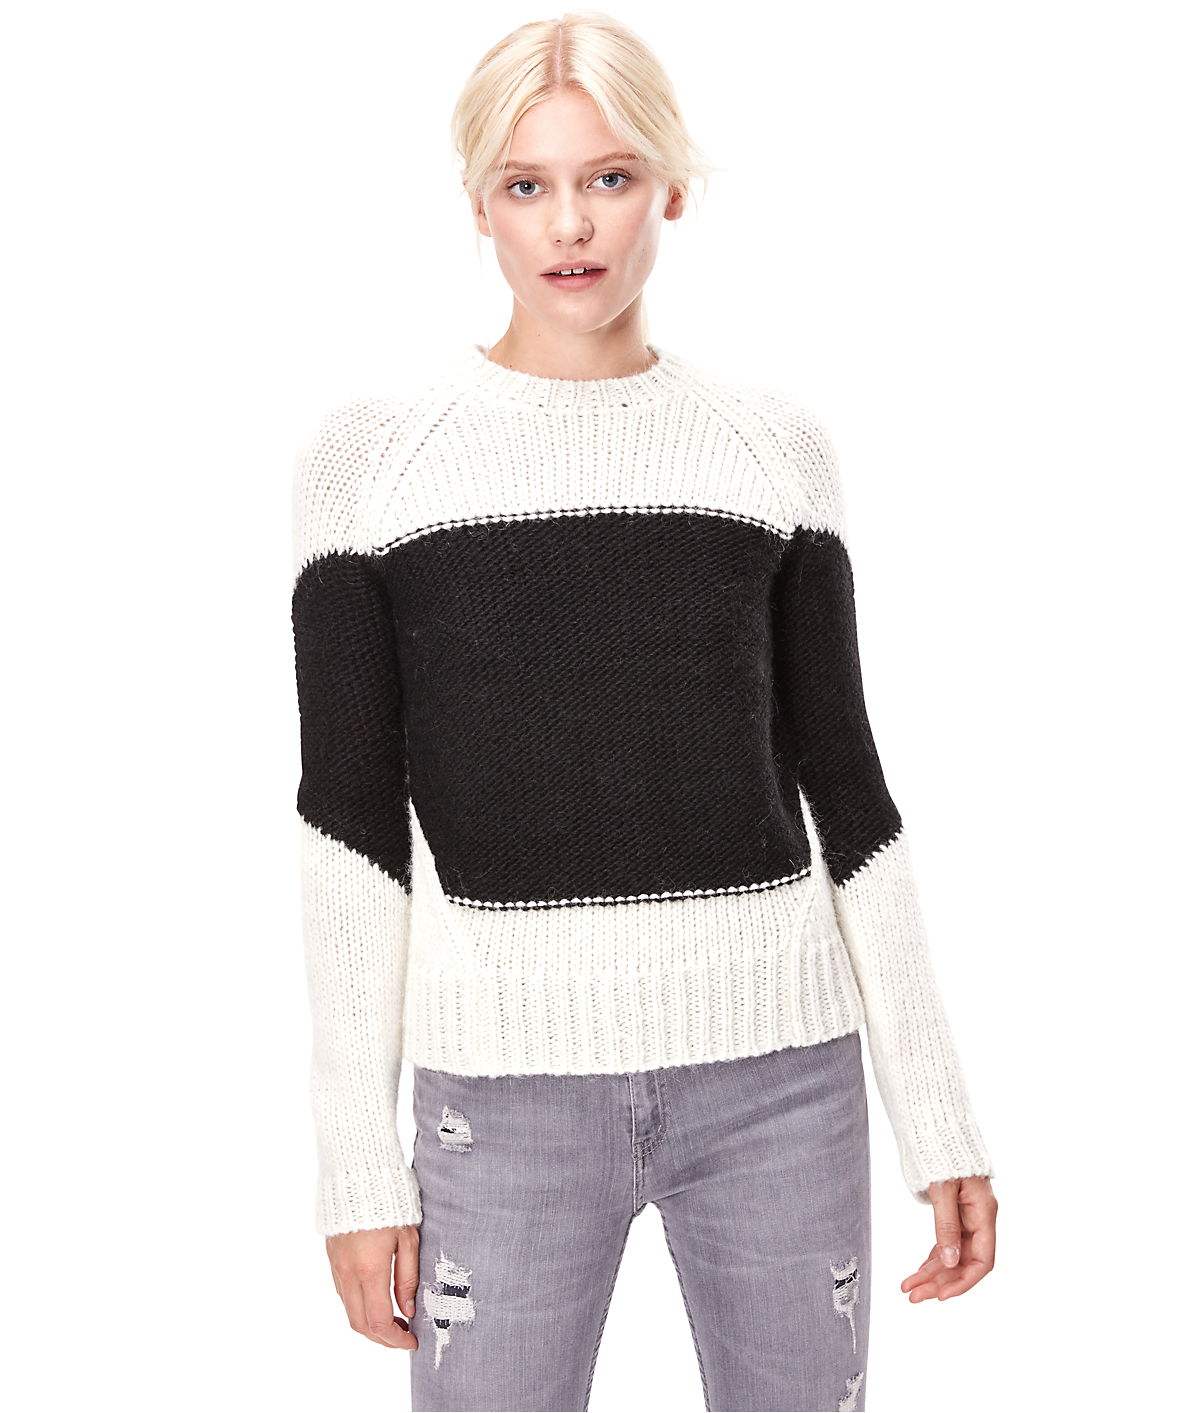 Knit jumper W2165301 from liebeskind